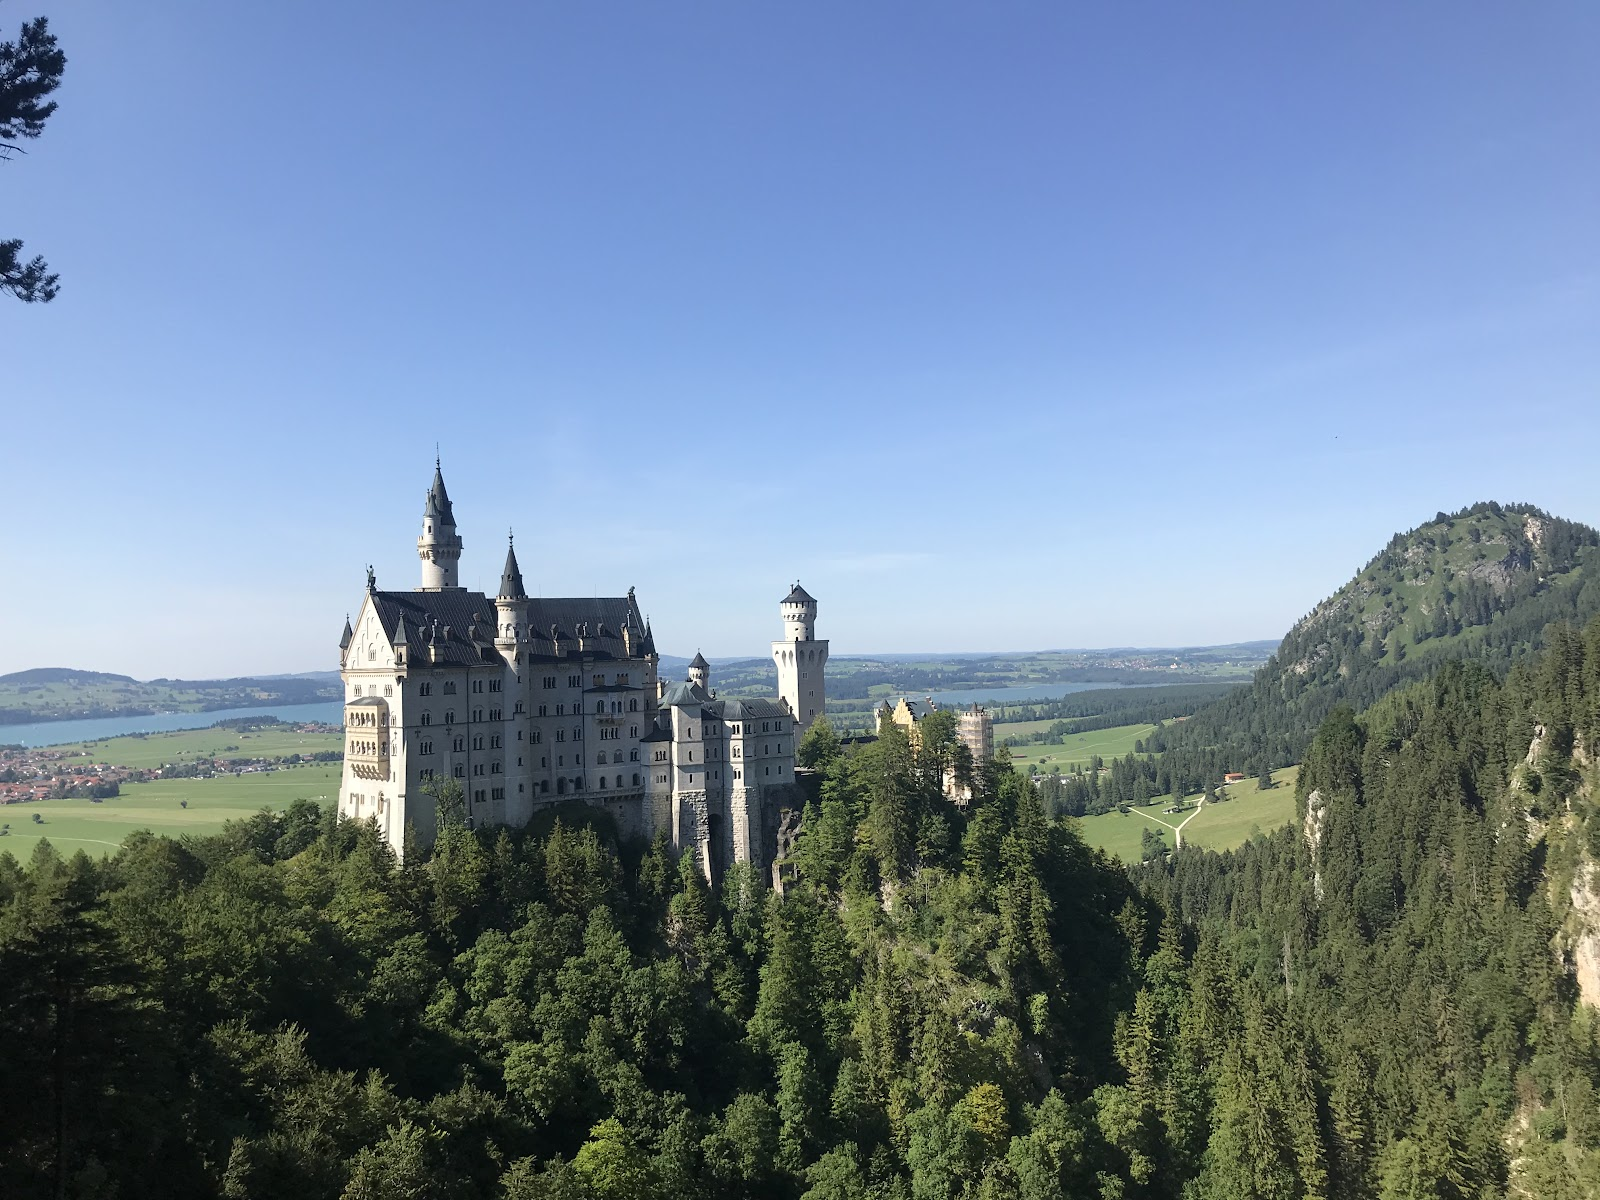 neuschwanstein white magical disney castle on green hill forest greenfields and lake in background germany bavaria. See it during a short day trip from Munich with Rentalmoose